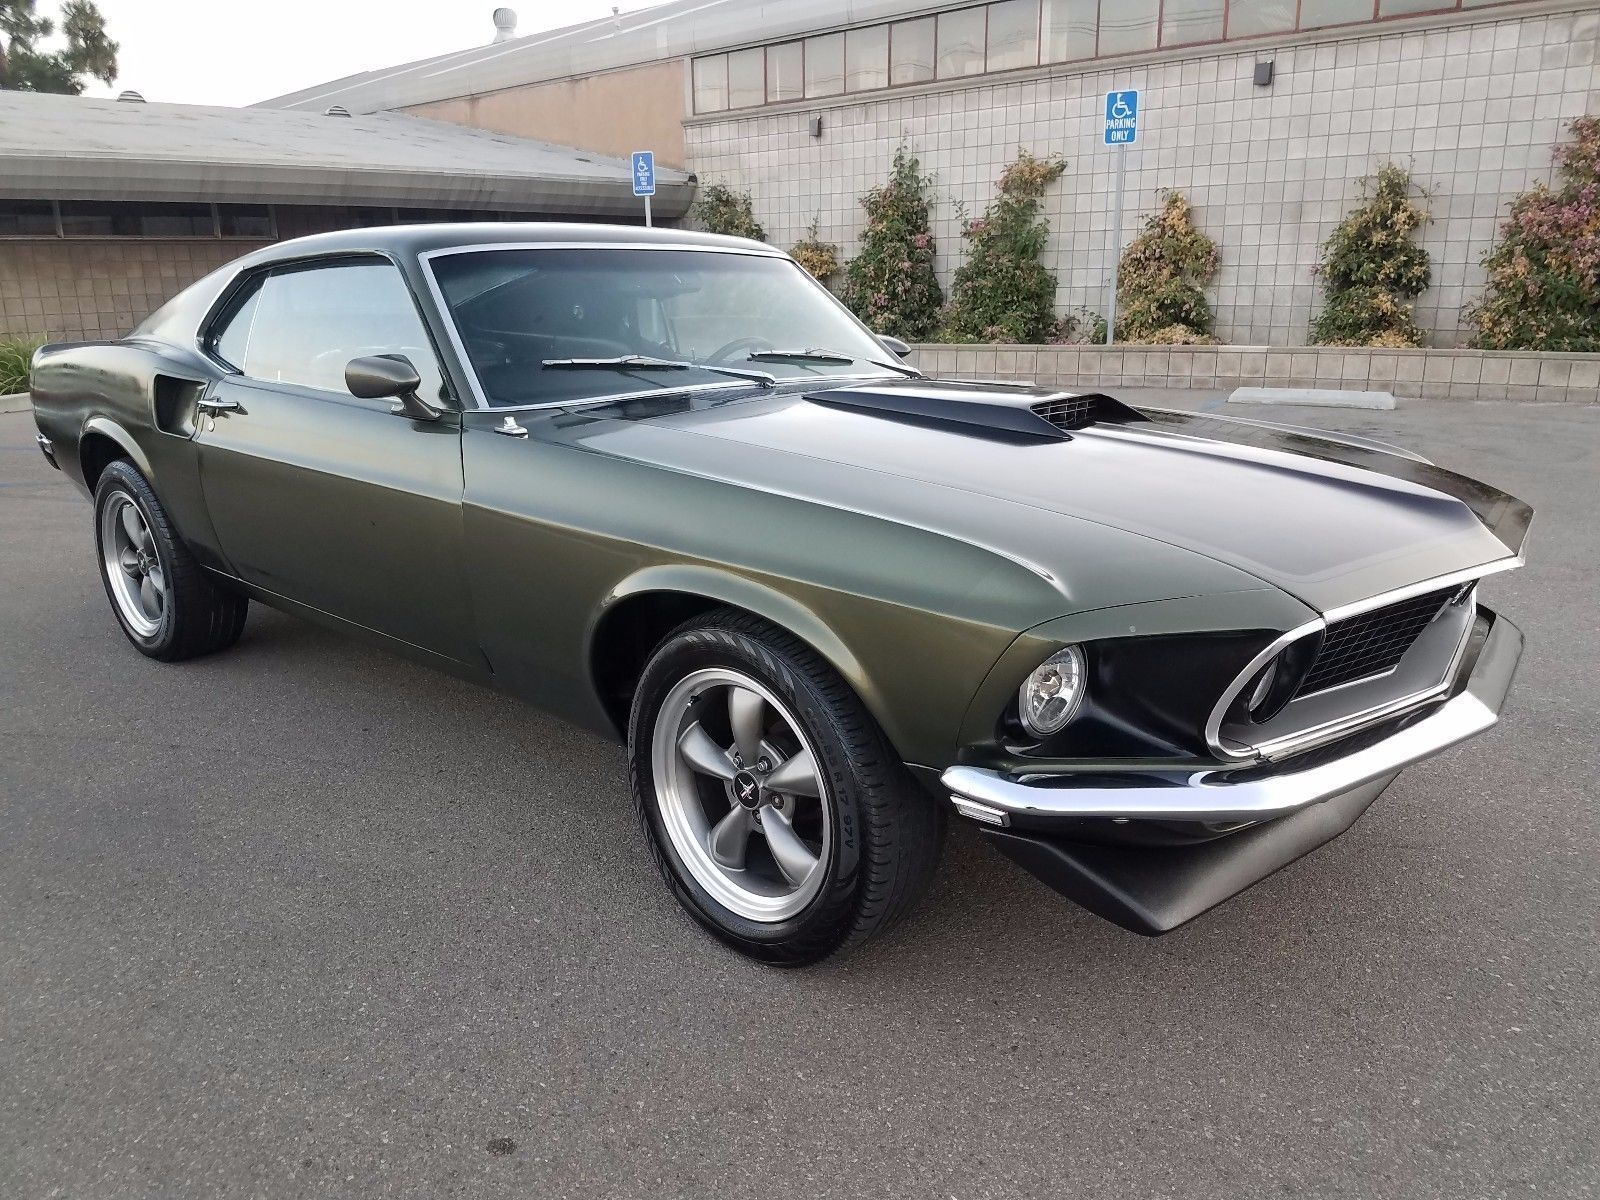 Ebay 1969 ford mustang 1969 ford mustang fastback restomod must see fordmustang ford